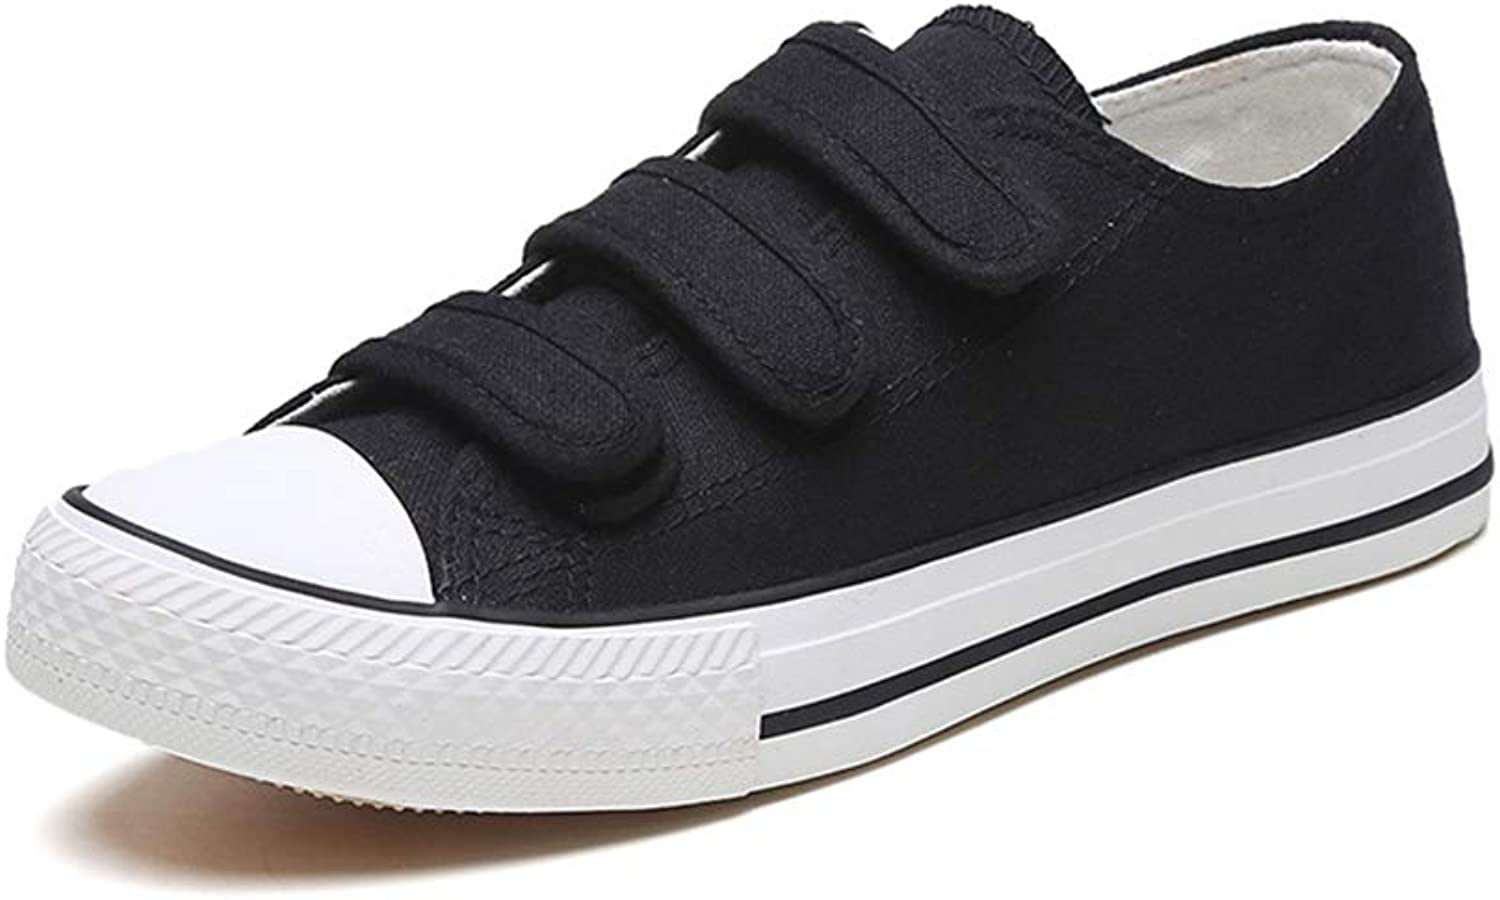 Super explosion Women's Comfortable Sneakers Casual Canvas shoes, Low Top LHook&Loop Cap Toe Flats for Girls